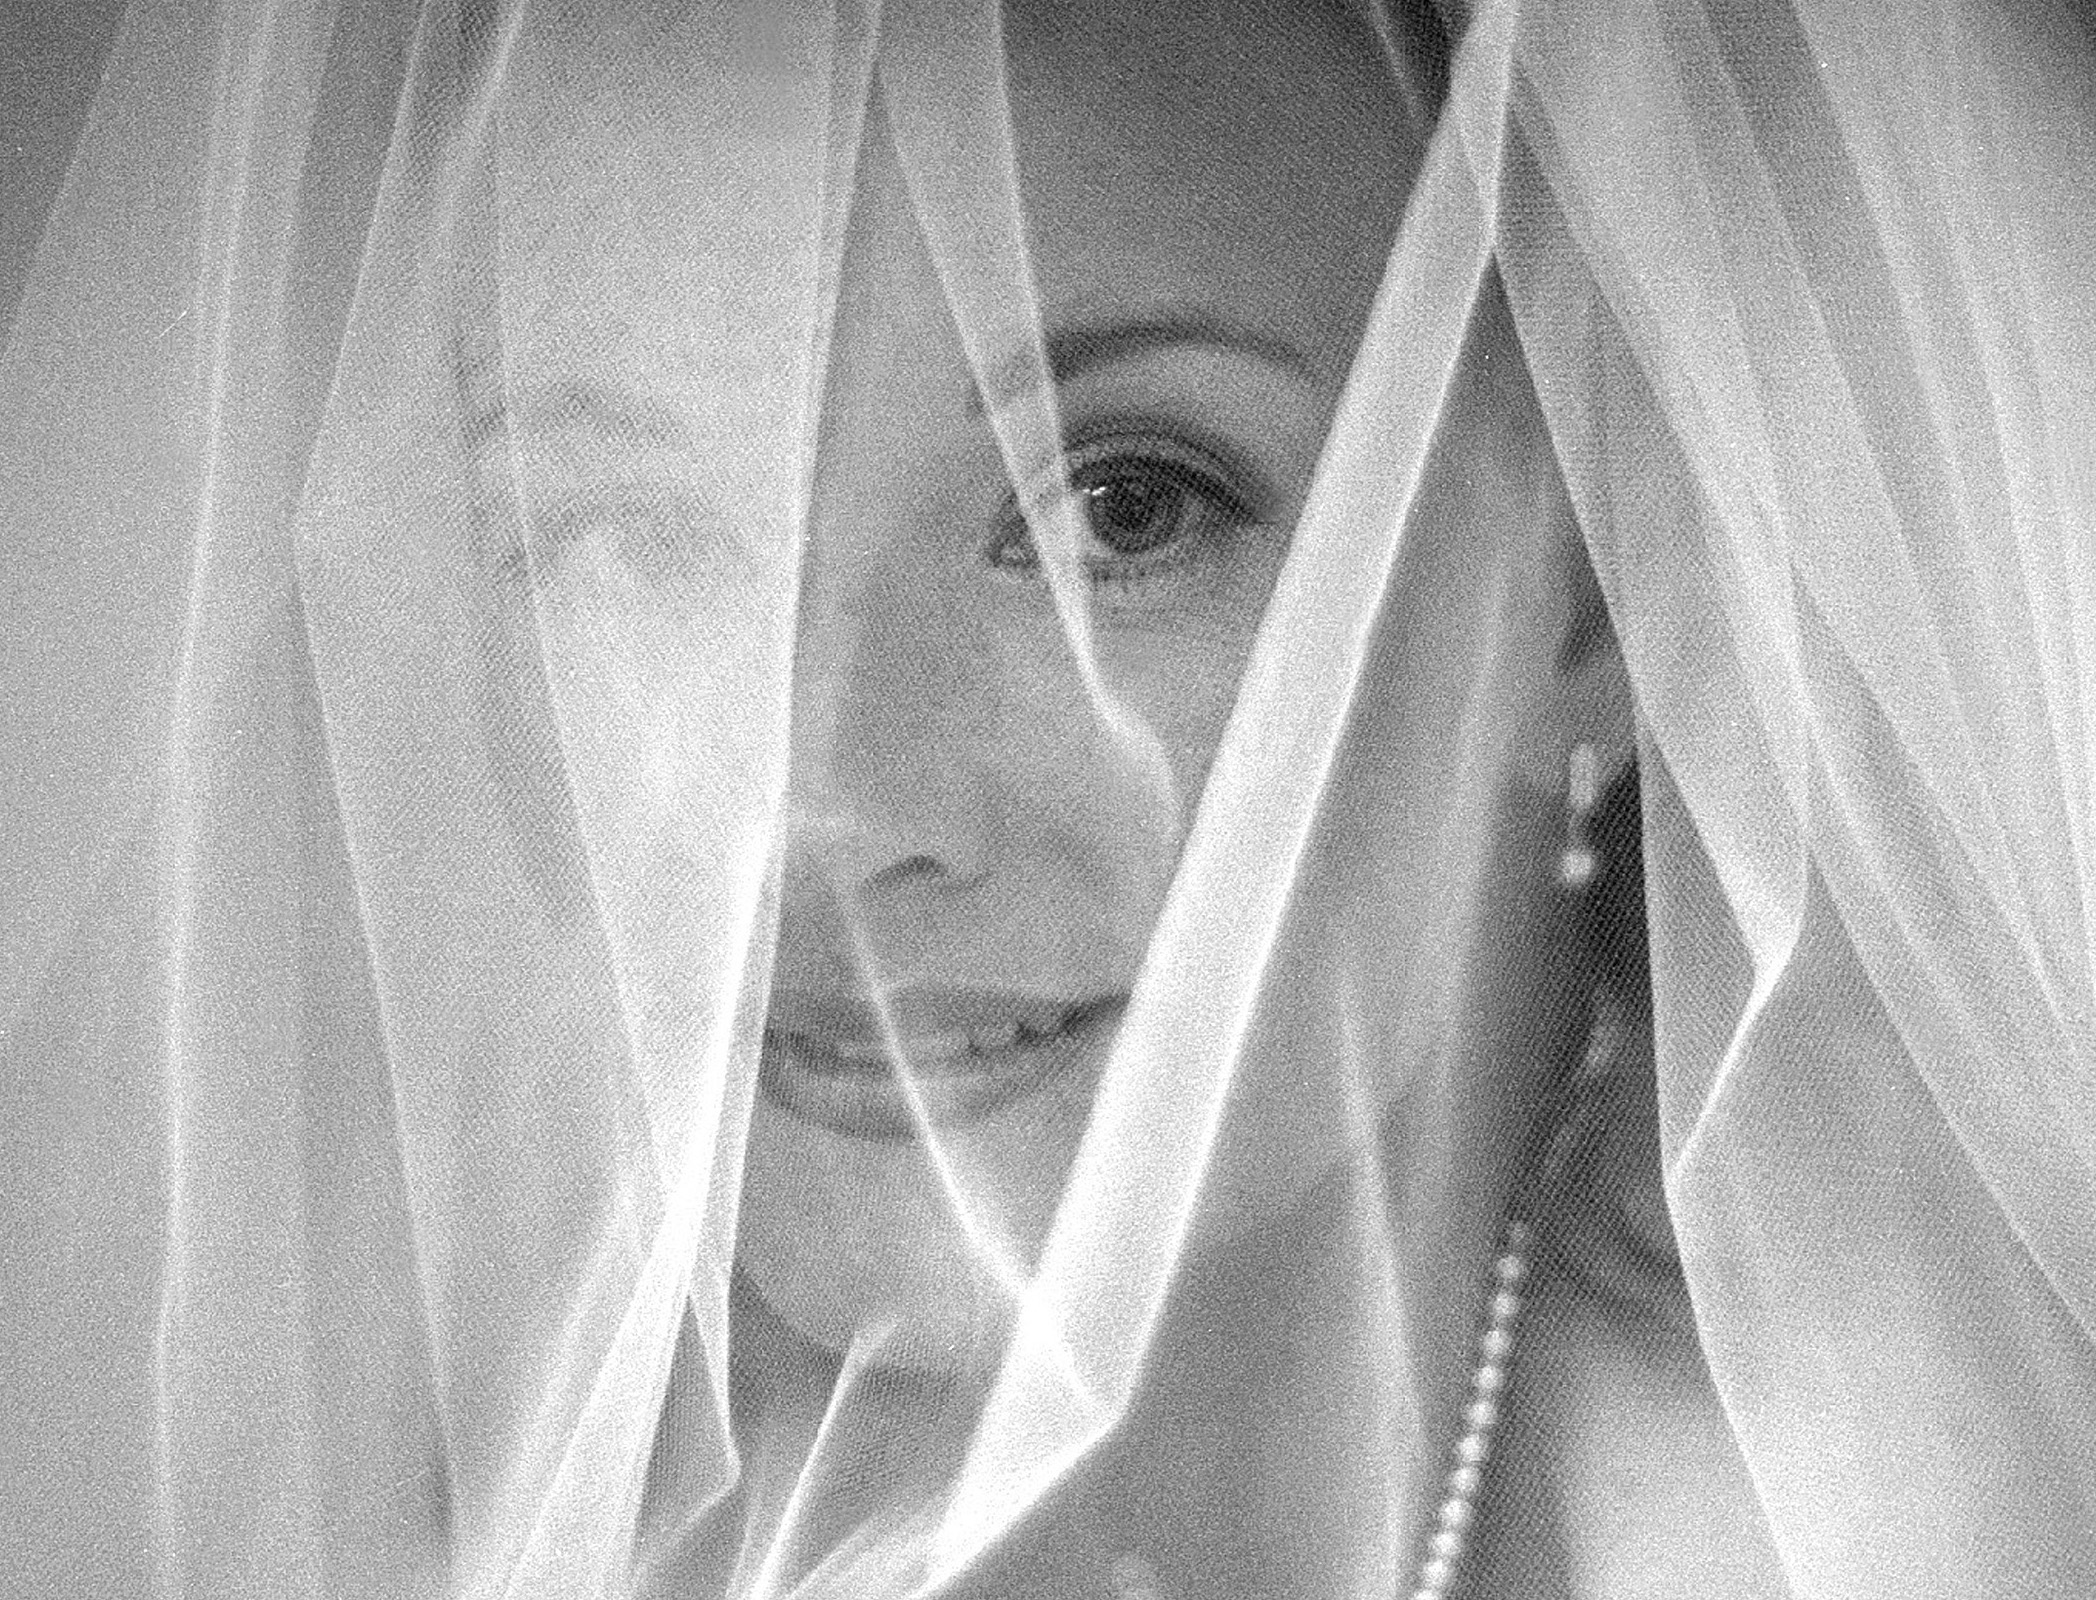 Bride's face with veil